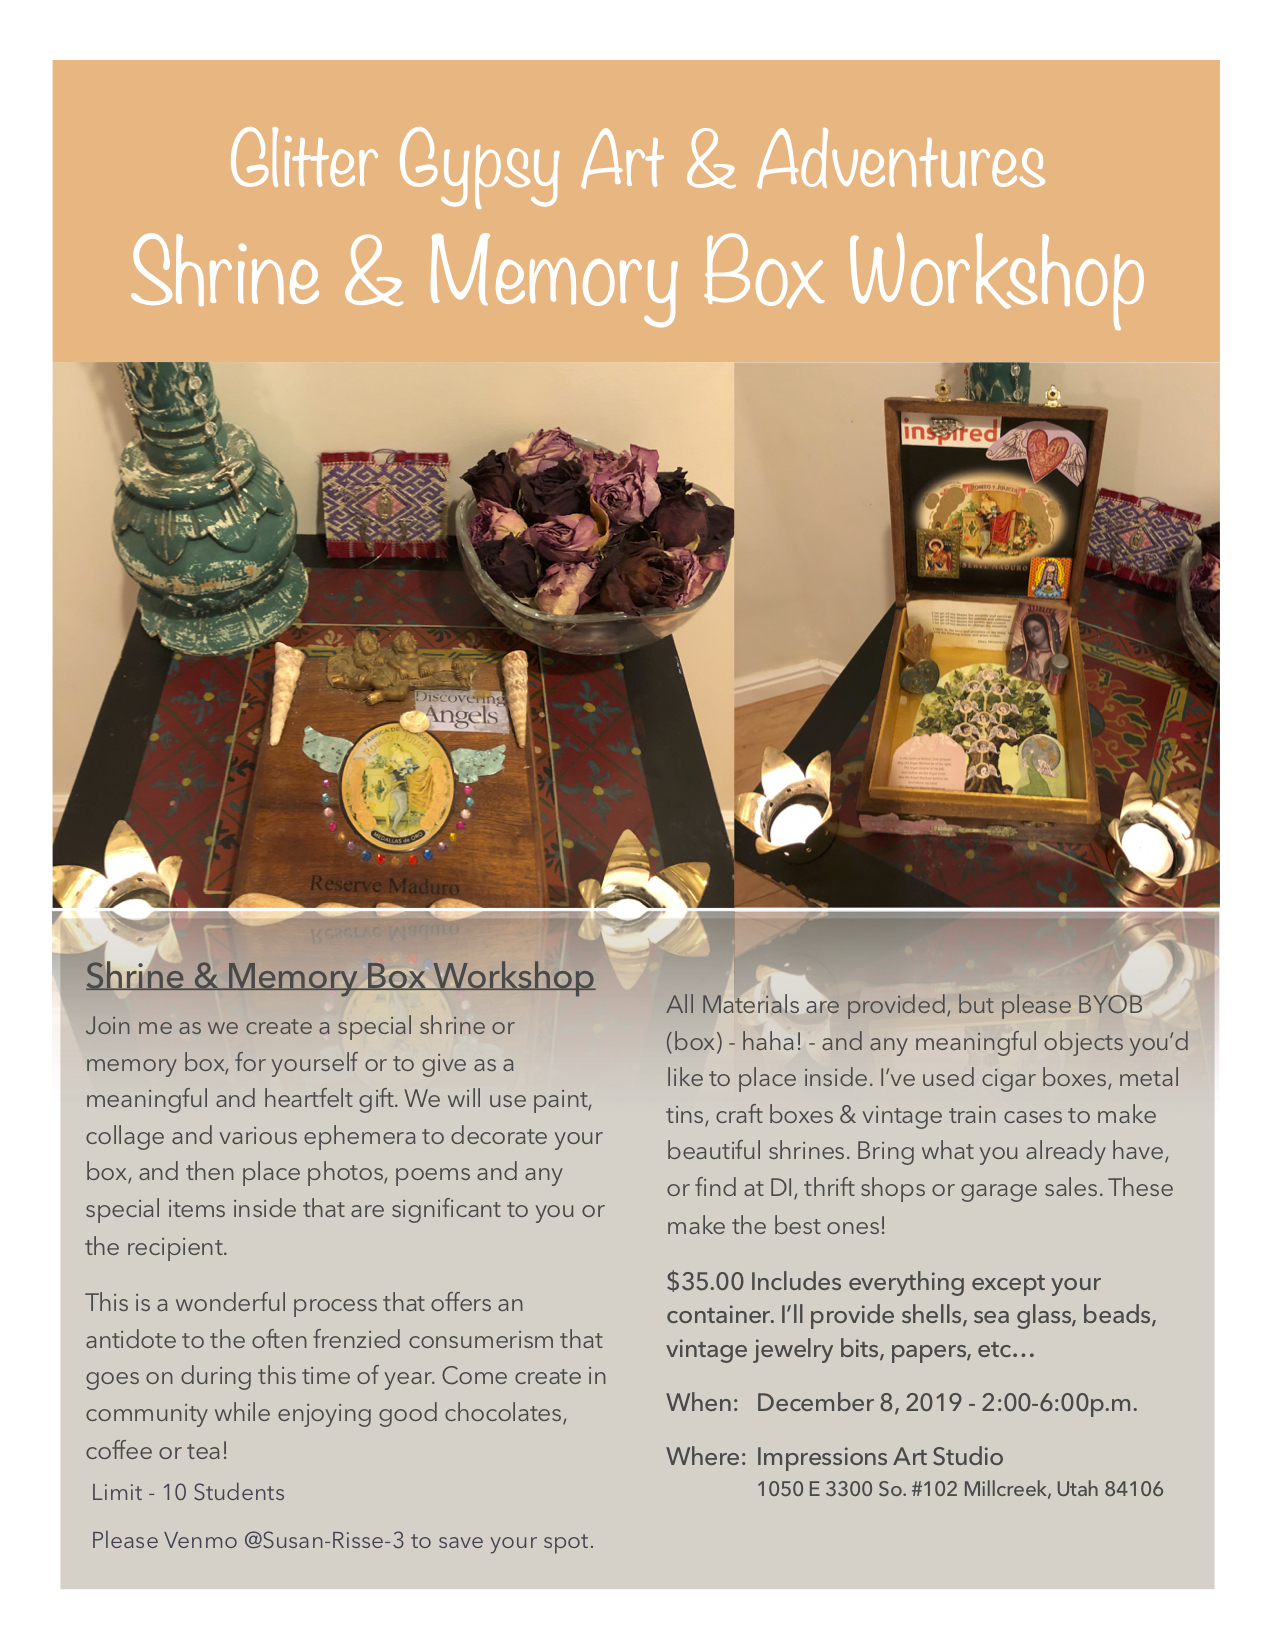 Shrine&MemoryBox_Draft